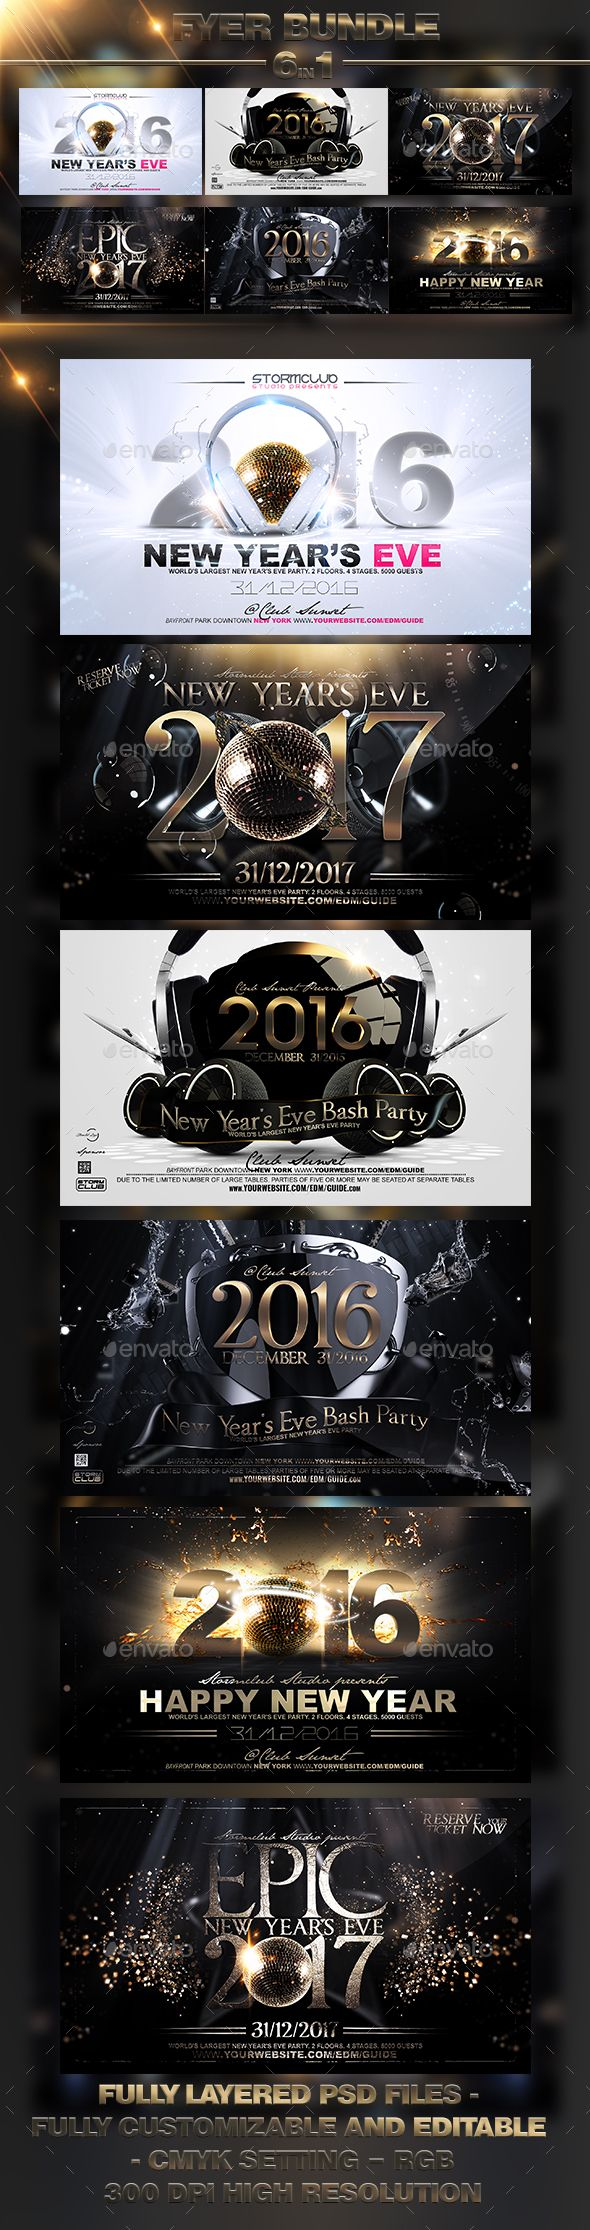 NYE Flyer Bundle Templates PSD #design Download: http://graphicriver.net/item/nye-flyer-bundle/13796288?ref=ksioks